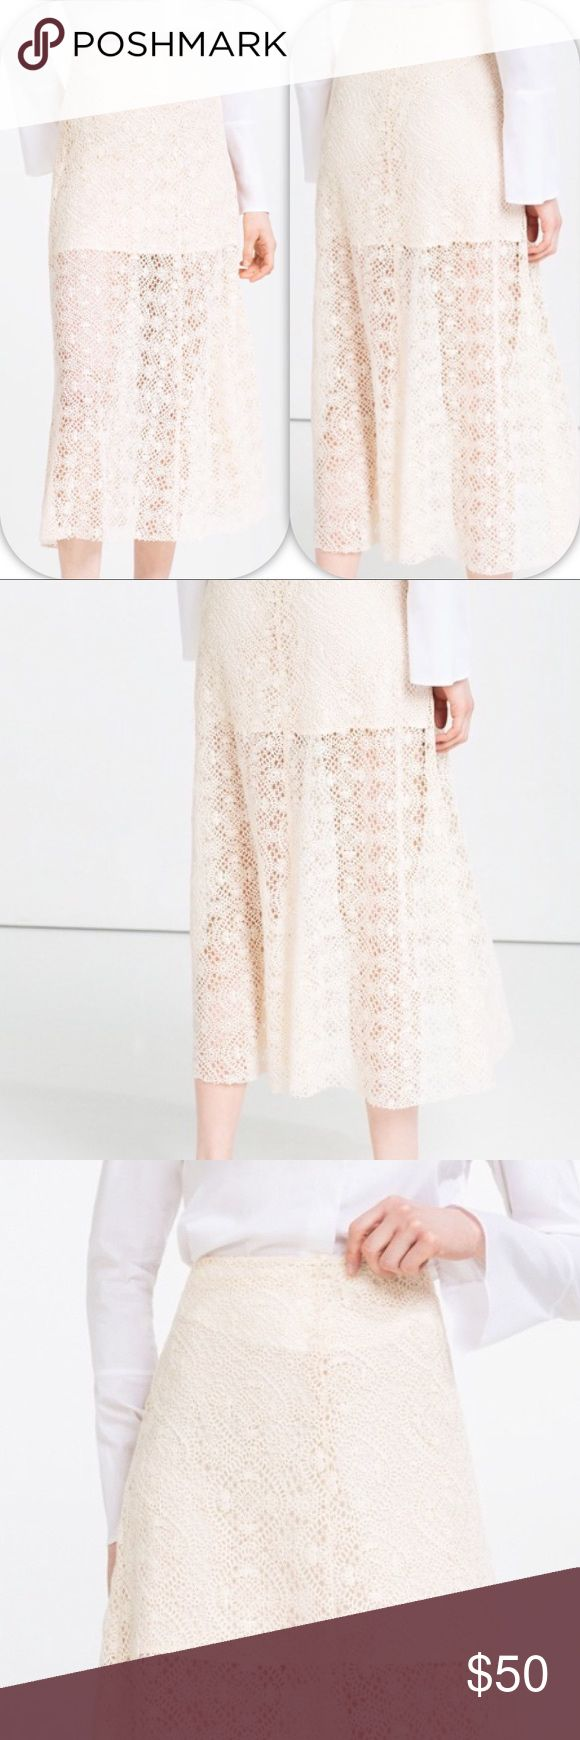 NWT ZARA WOMAN LACE LAYER MIDI SKIRT - - Small Brand: Zara Woman Lace layer midi skirt beige          Condition: New with tag || Size Small   📌NO  TRADES  🛑NO LOWBALL OFFERS  ⛔️NO RUDE COMMENTS  🚷NO MODELING  ☀️Please don't discuss prices in the comment box. Make a reasonable offer and I'll either counter, accept or decline.   I will try to respond to all inquiries in a timely manner. Please check out the rest of my closet, I have various brands. Some new with tag, others in excellent Cd…